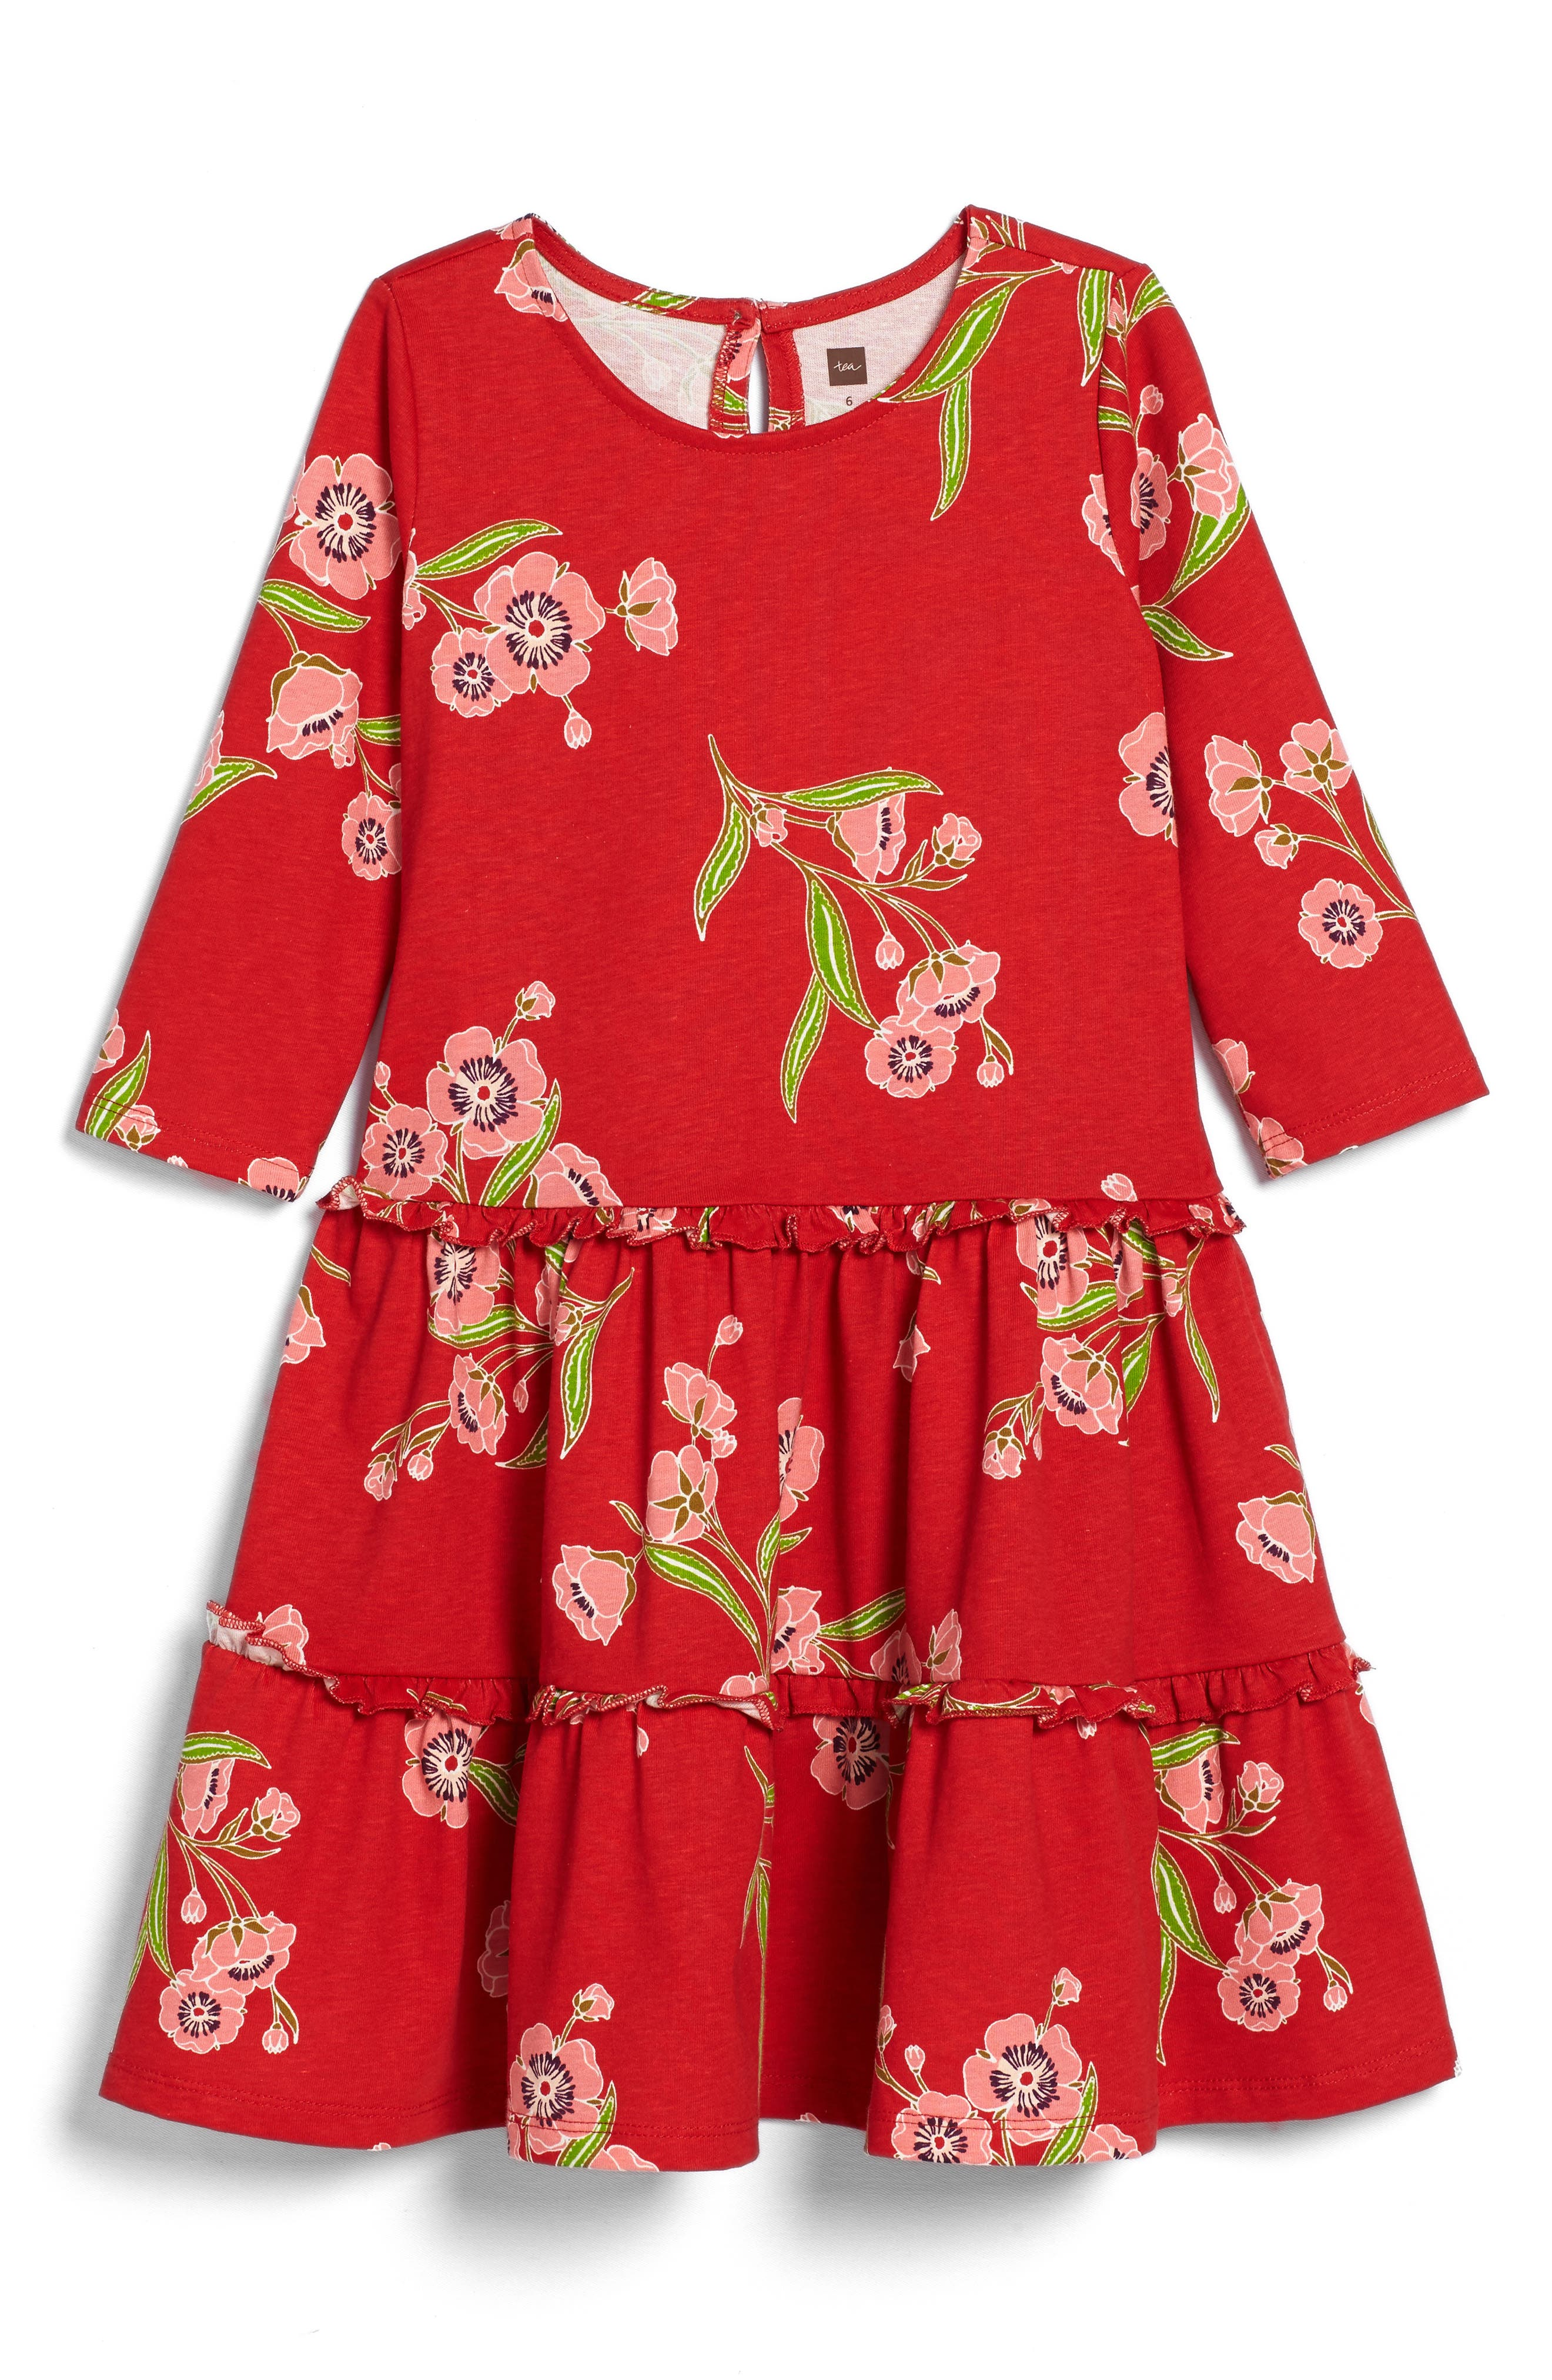 Rowan Floral Print Tiered Dress,                         Main,                         color, Red Lantern